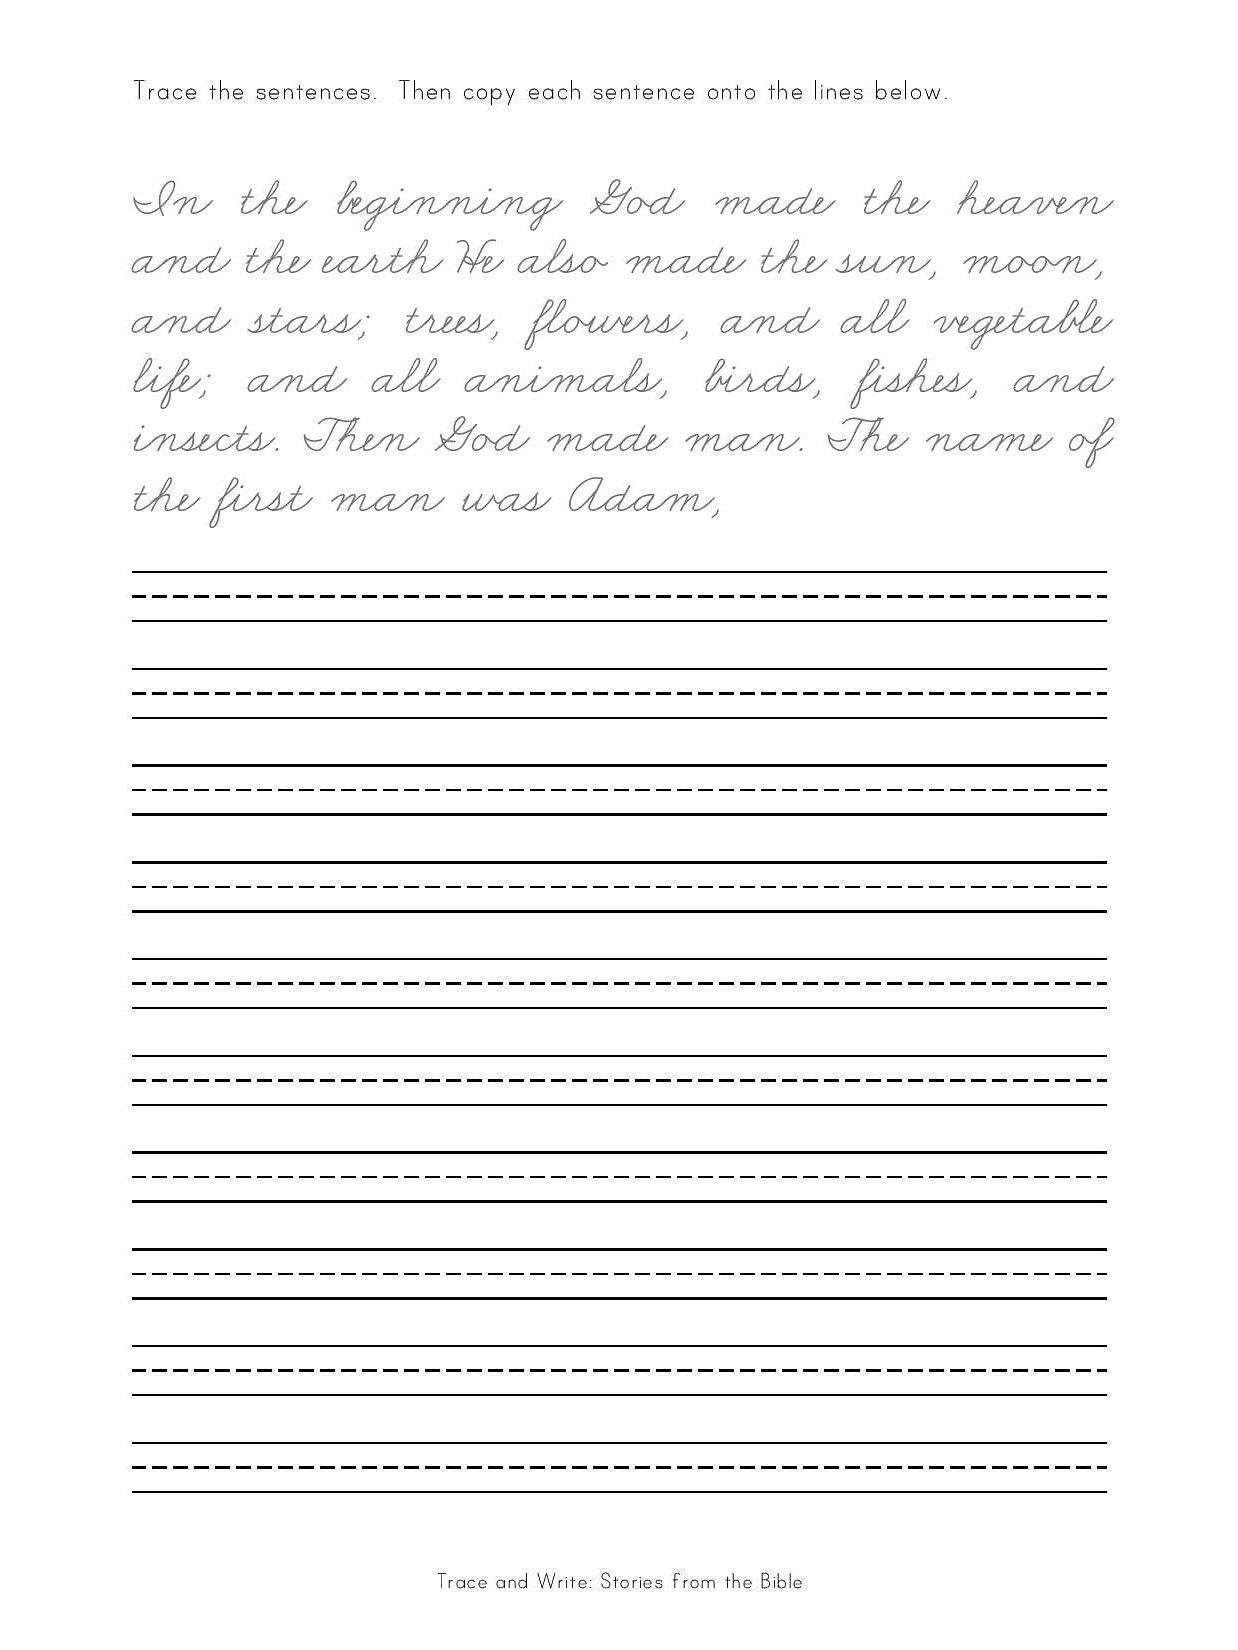 handwritingworkbooks trace and write old testament bible stories